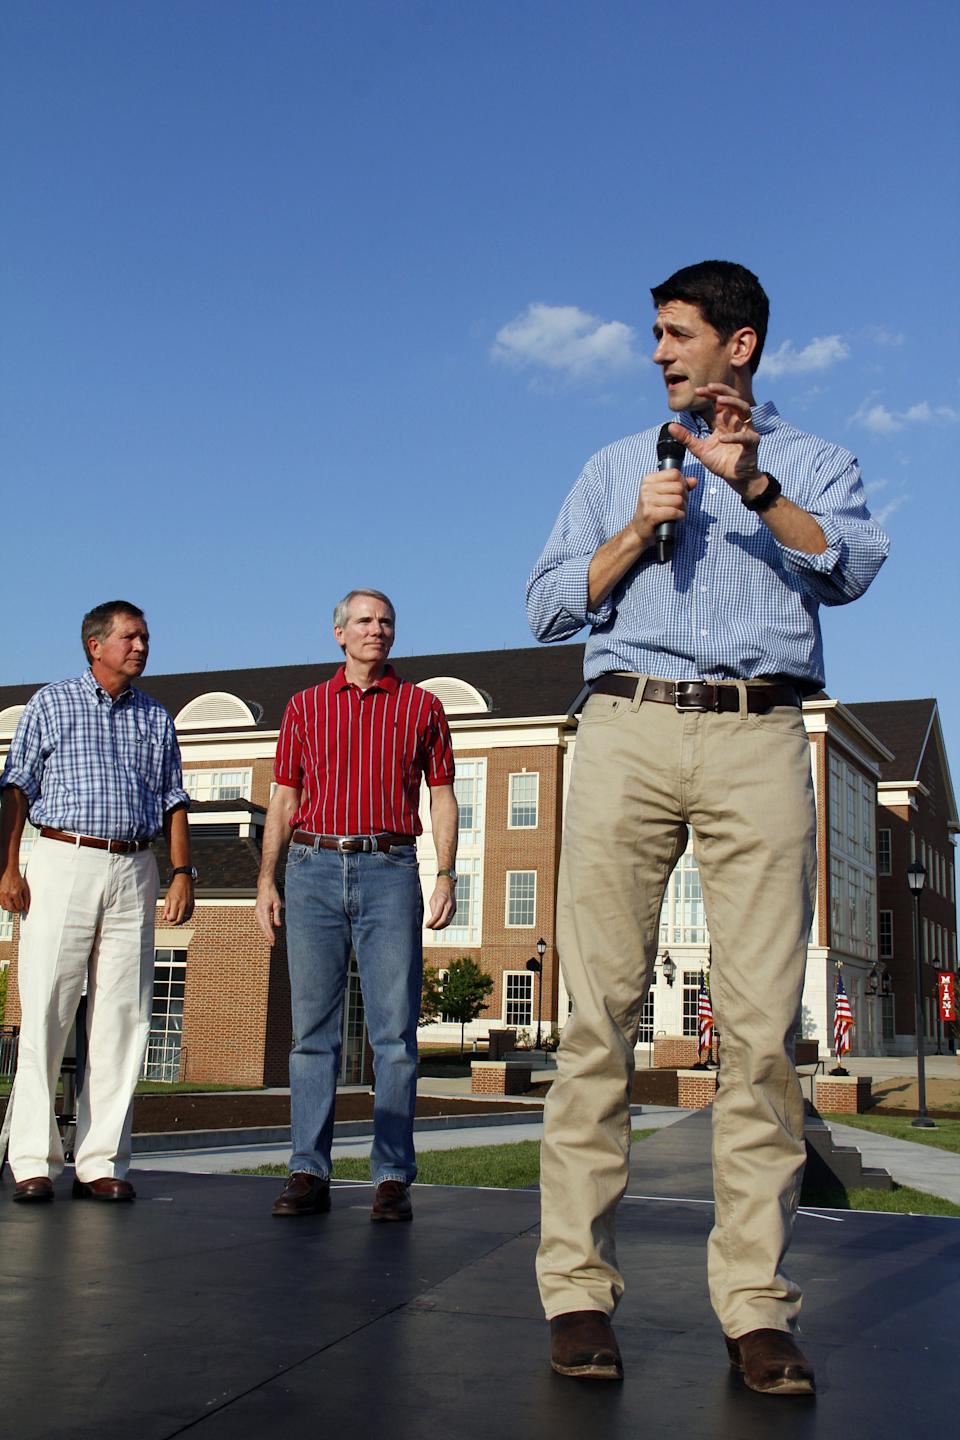 Vice Presidential candidate Rep Paul Ryan, R-Wis., right, talks to supporters at a rally on the campus of Miami University in Oxford Ohio, Wednesday Aug. 15, 2012, as Ohio Gov. John Kasich, left, and Rep. Rob Portman, listen. (AP Photo/Tom Uhlman)